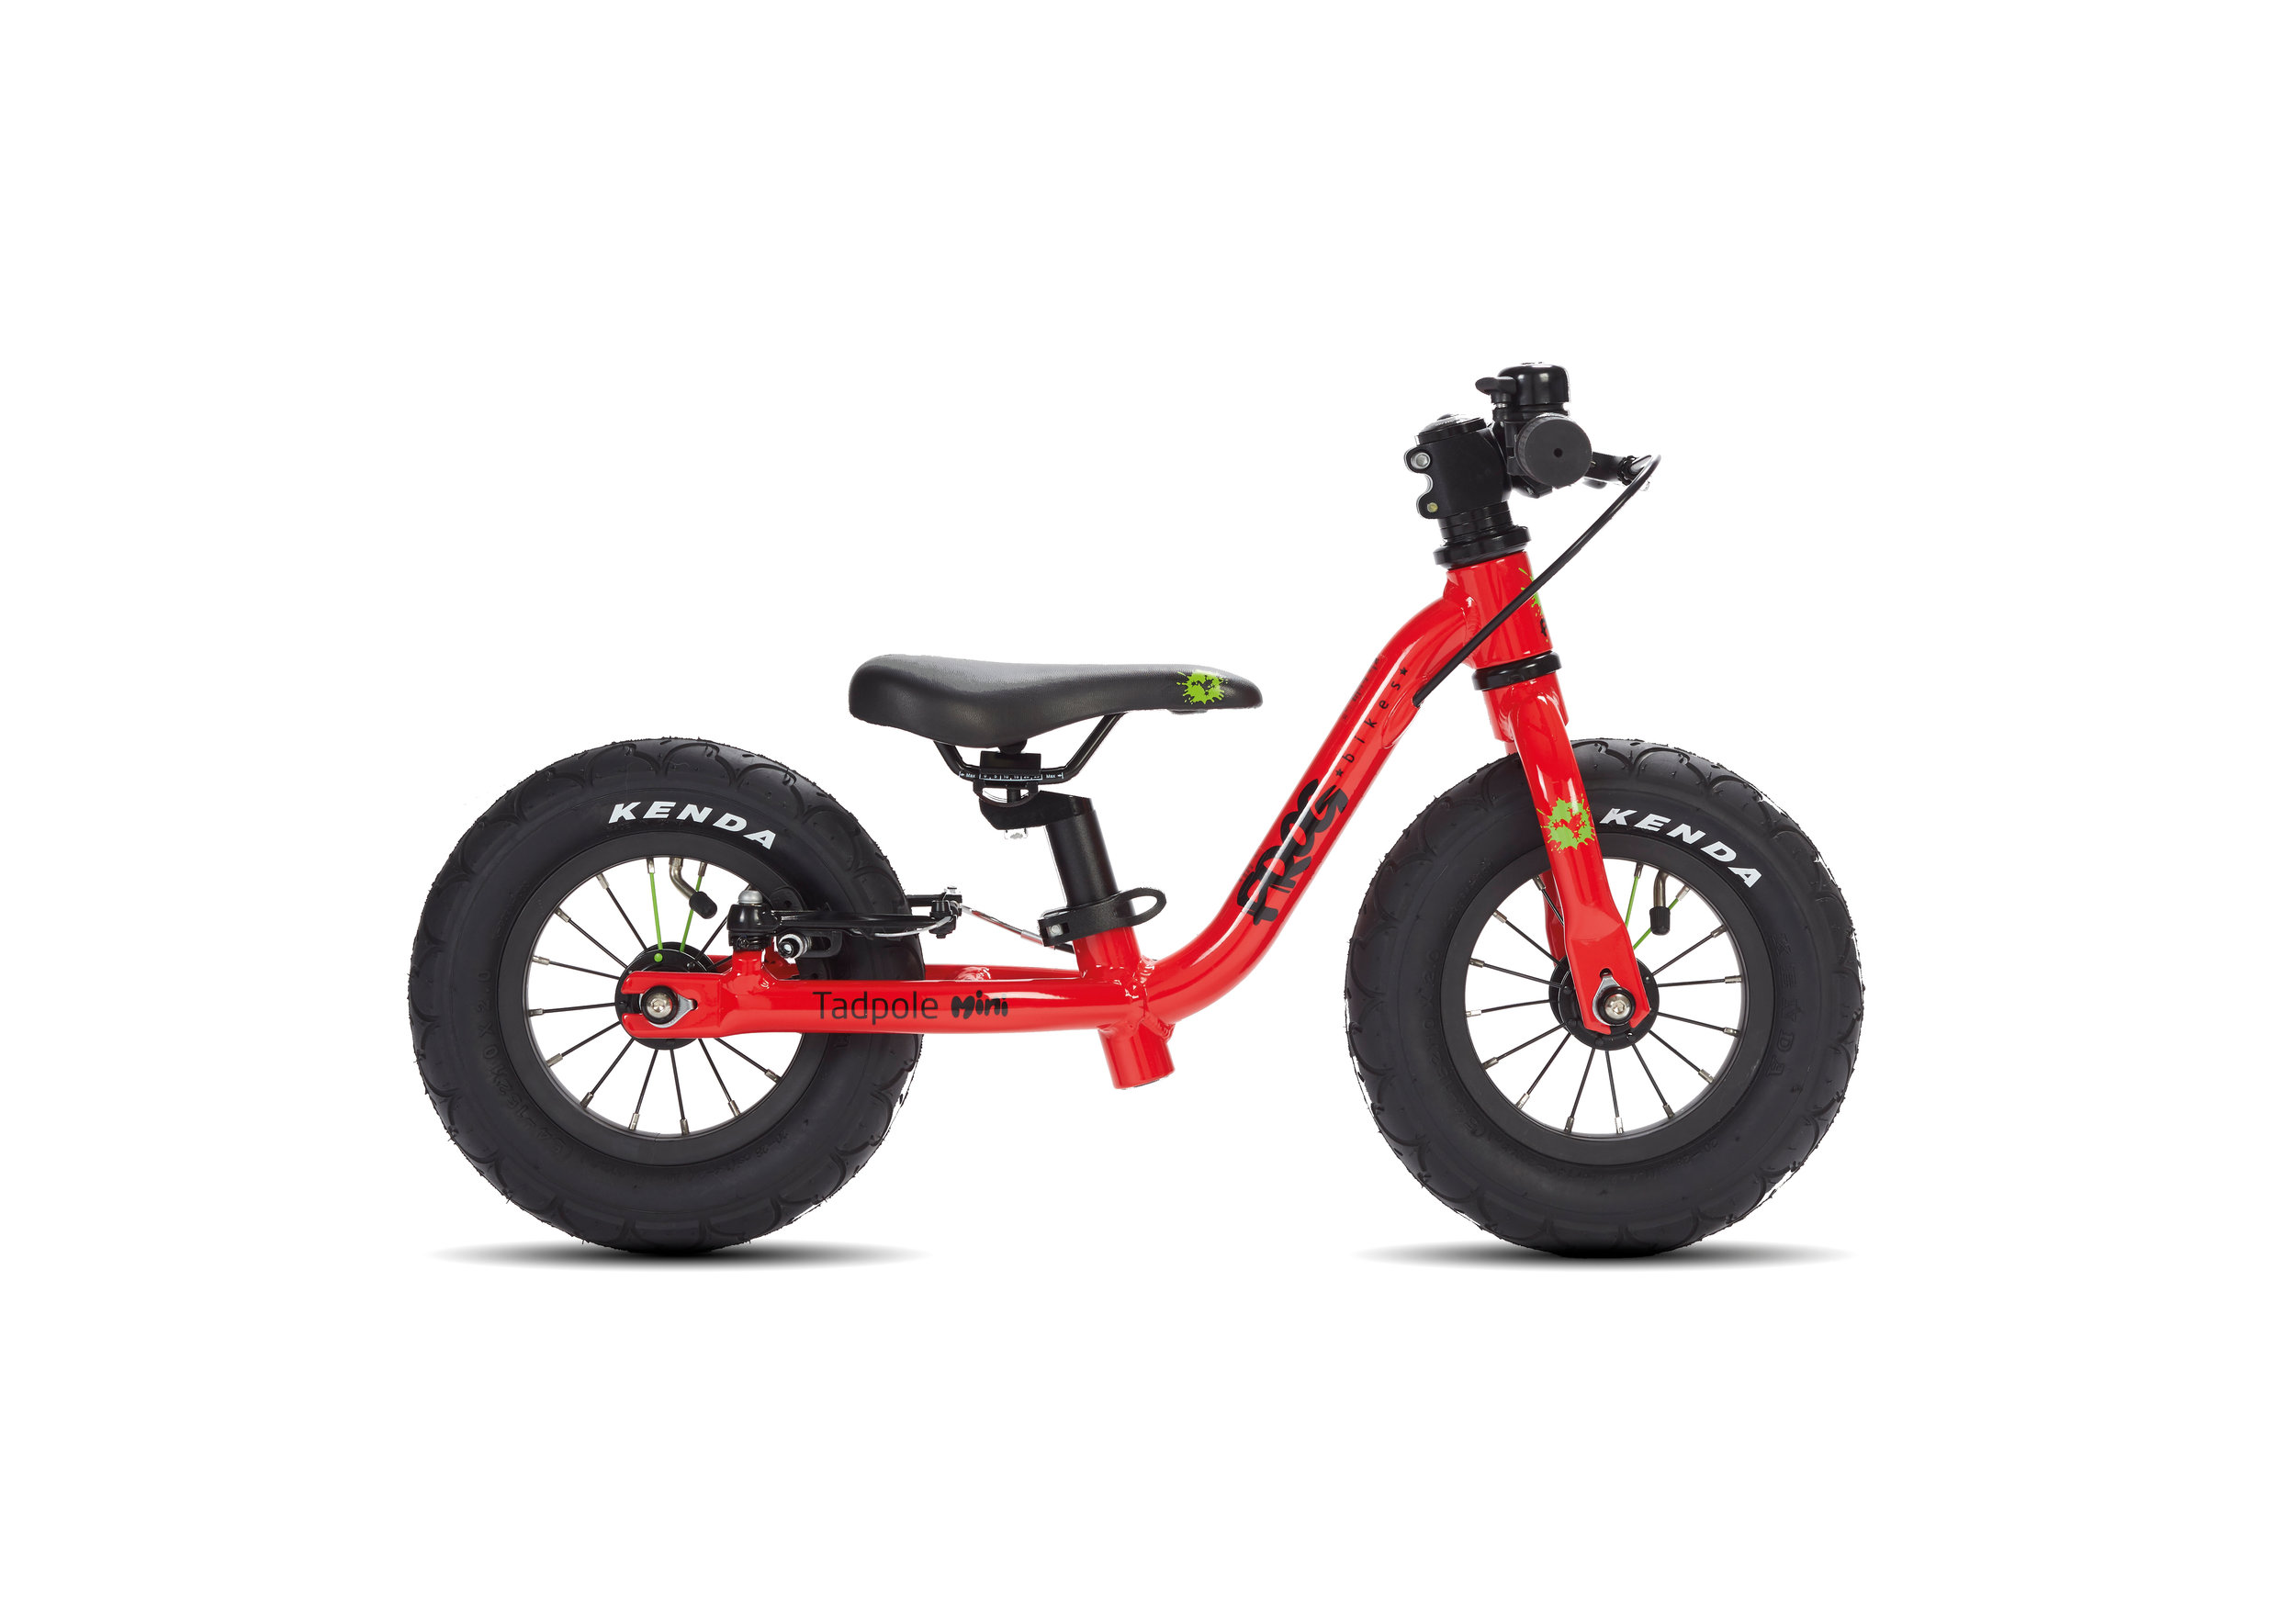 Tadpole Mini - The Tadpole Mini is a great first bike which helps the child to achieve the necessary balance to cycle. The Tadpole Mini is suitable for children aged 1 and 2 with a minimum inside leg of 24cm